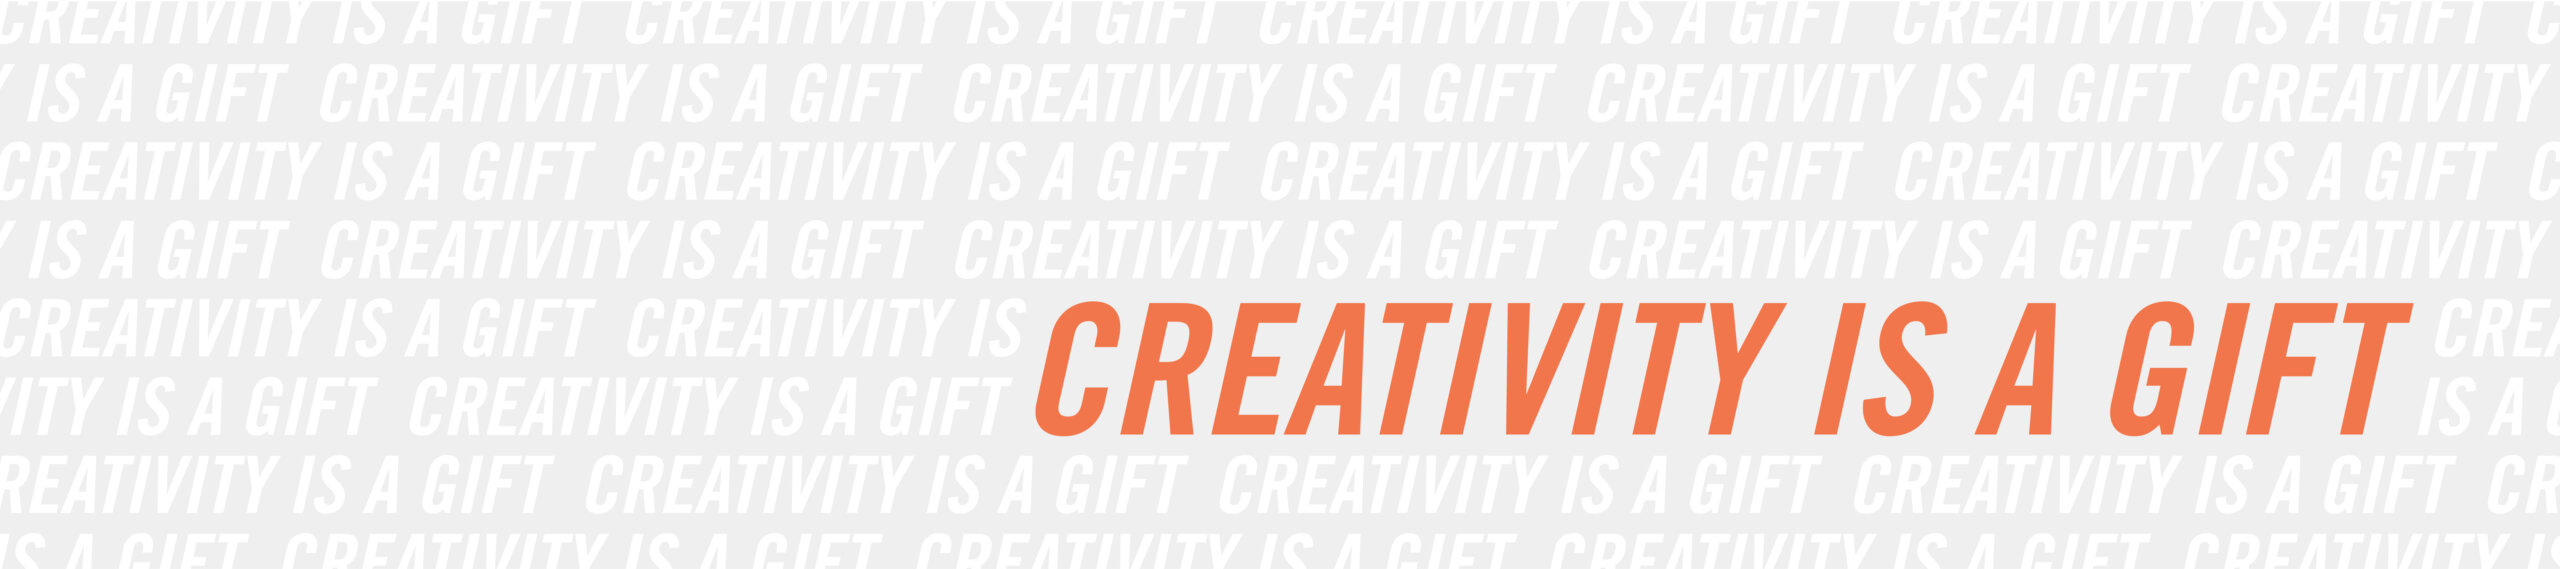 creativity is a gift header-01